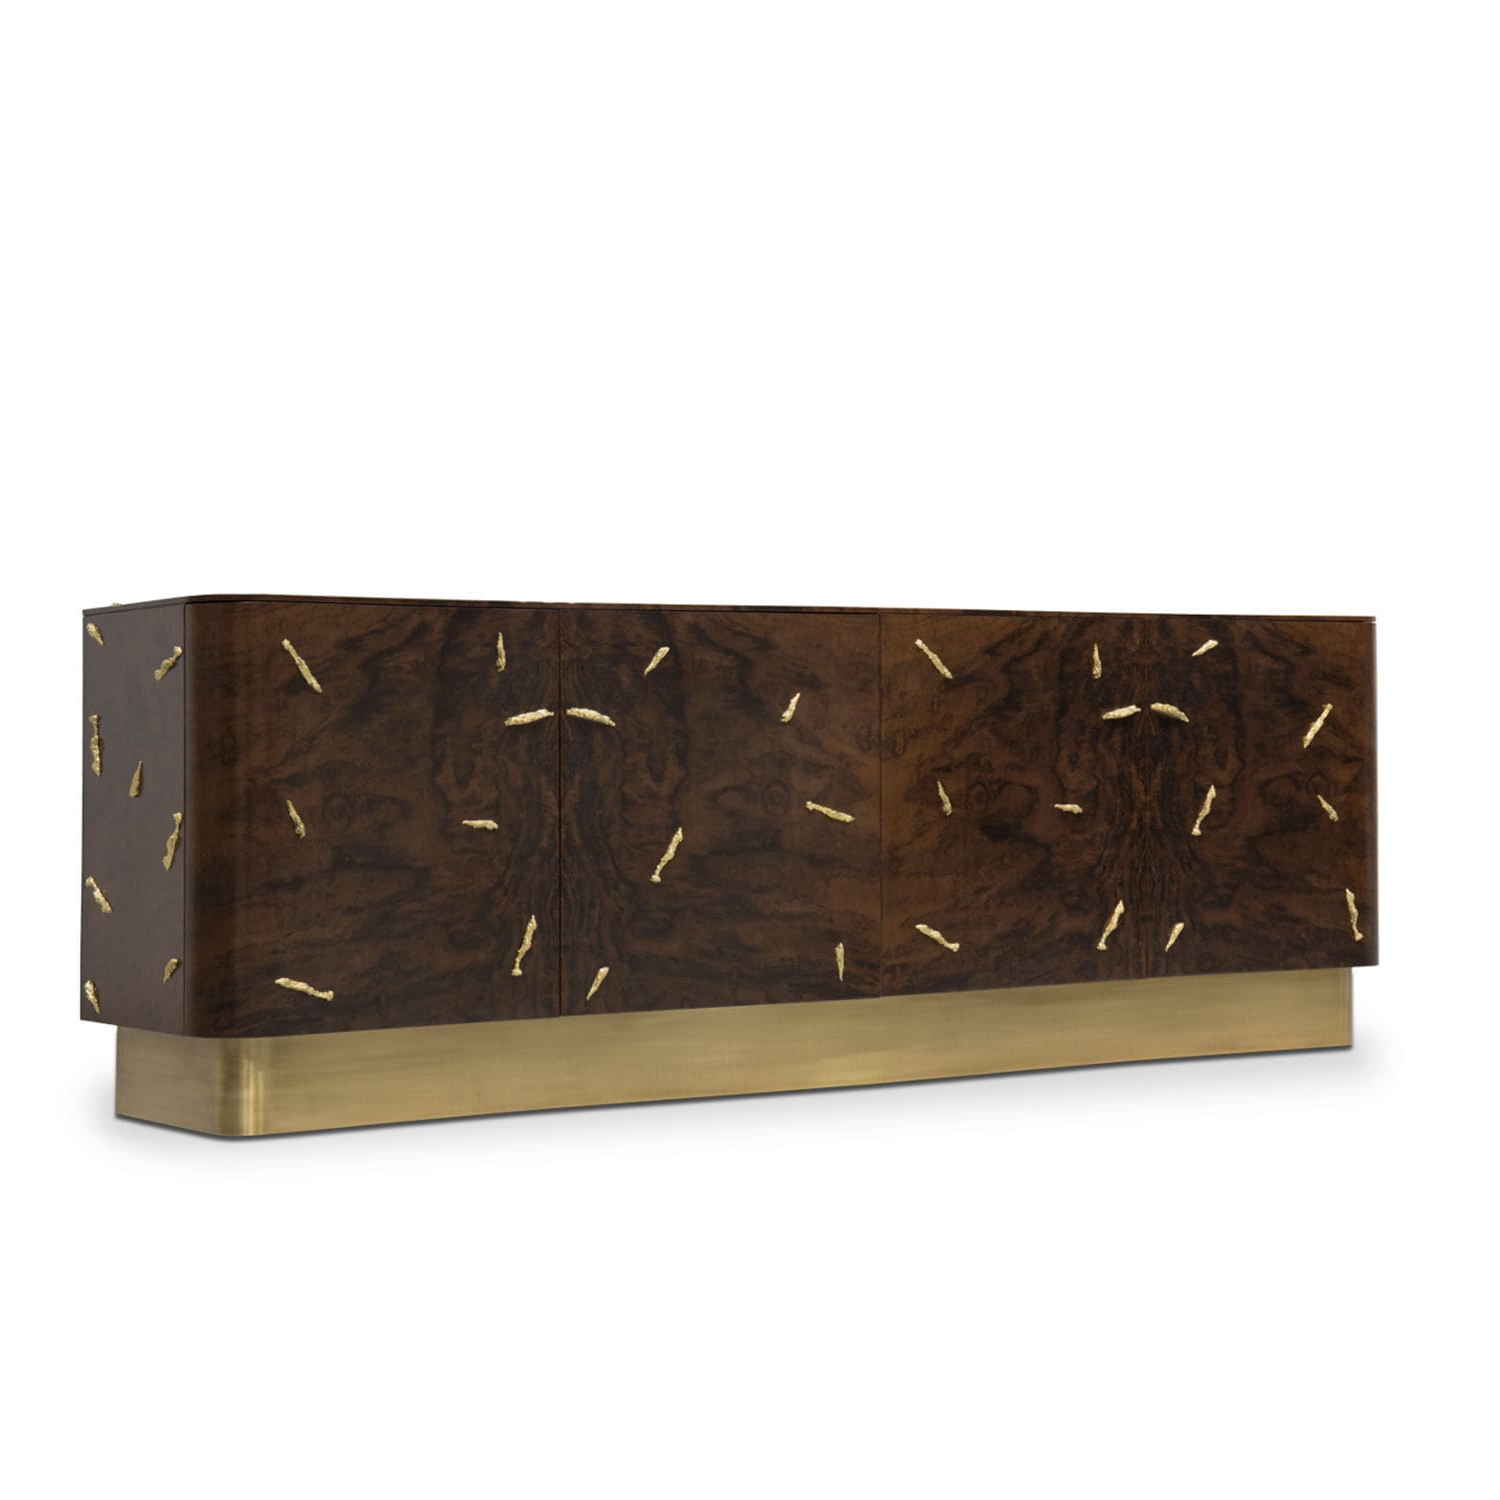 Well Known Walnut Finish Contempo Sideboards In Contemporary Sideboard / Walnut / Wood Veneer / Smoked Glass (View 19 of 20)